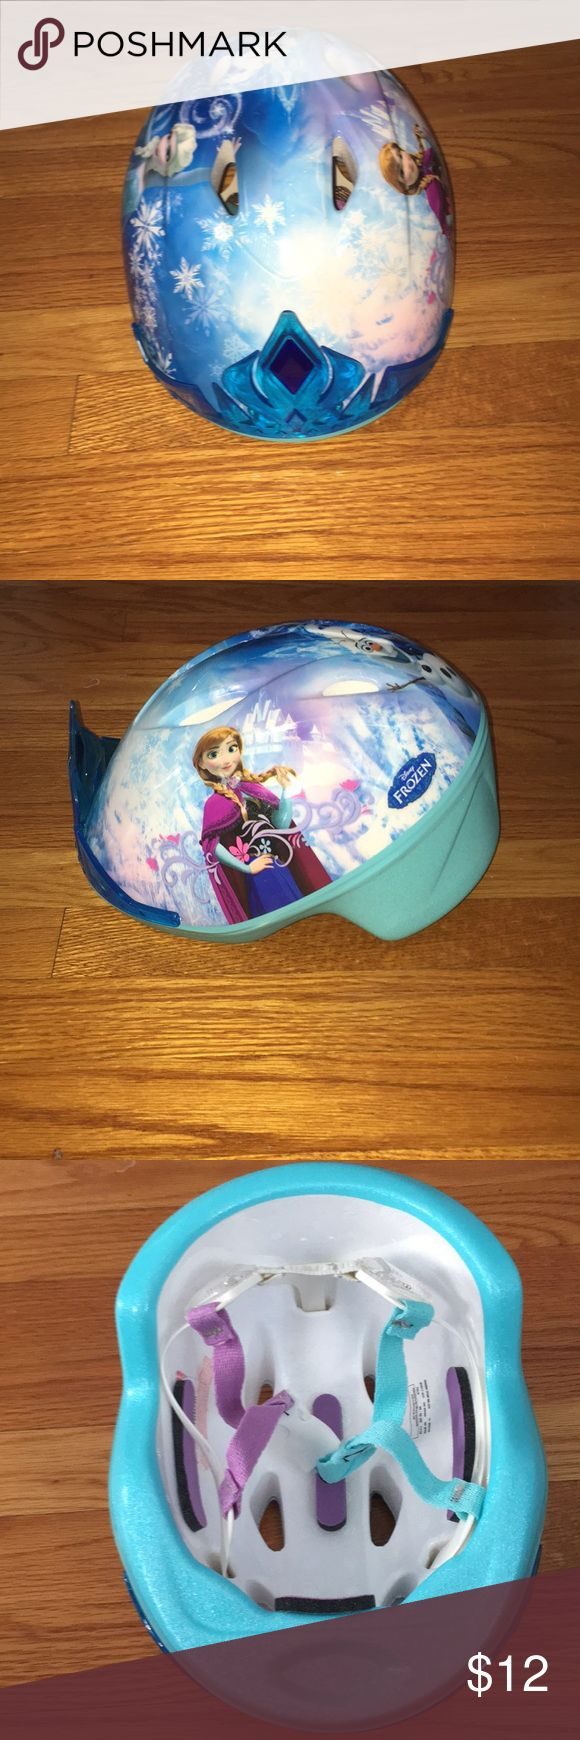 Disney Frozen Helmet Brand new without tags Frozen themed helmet. Fits a small child Other